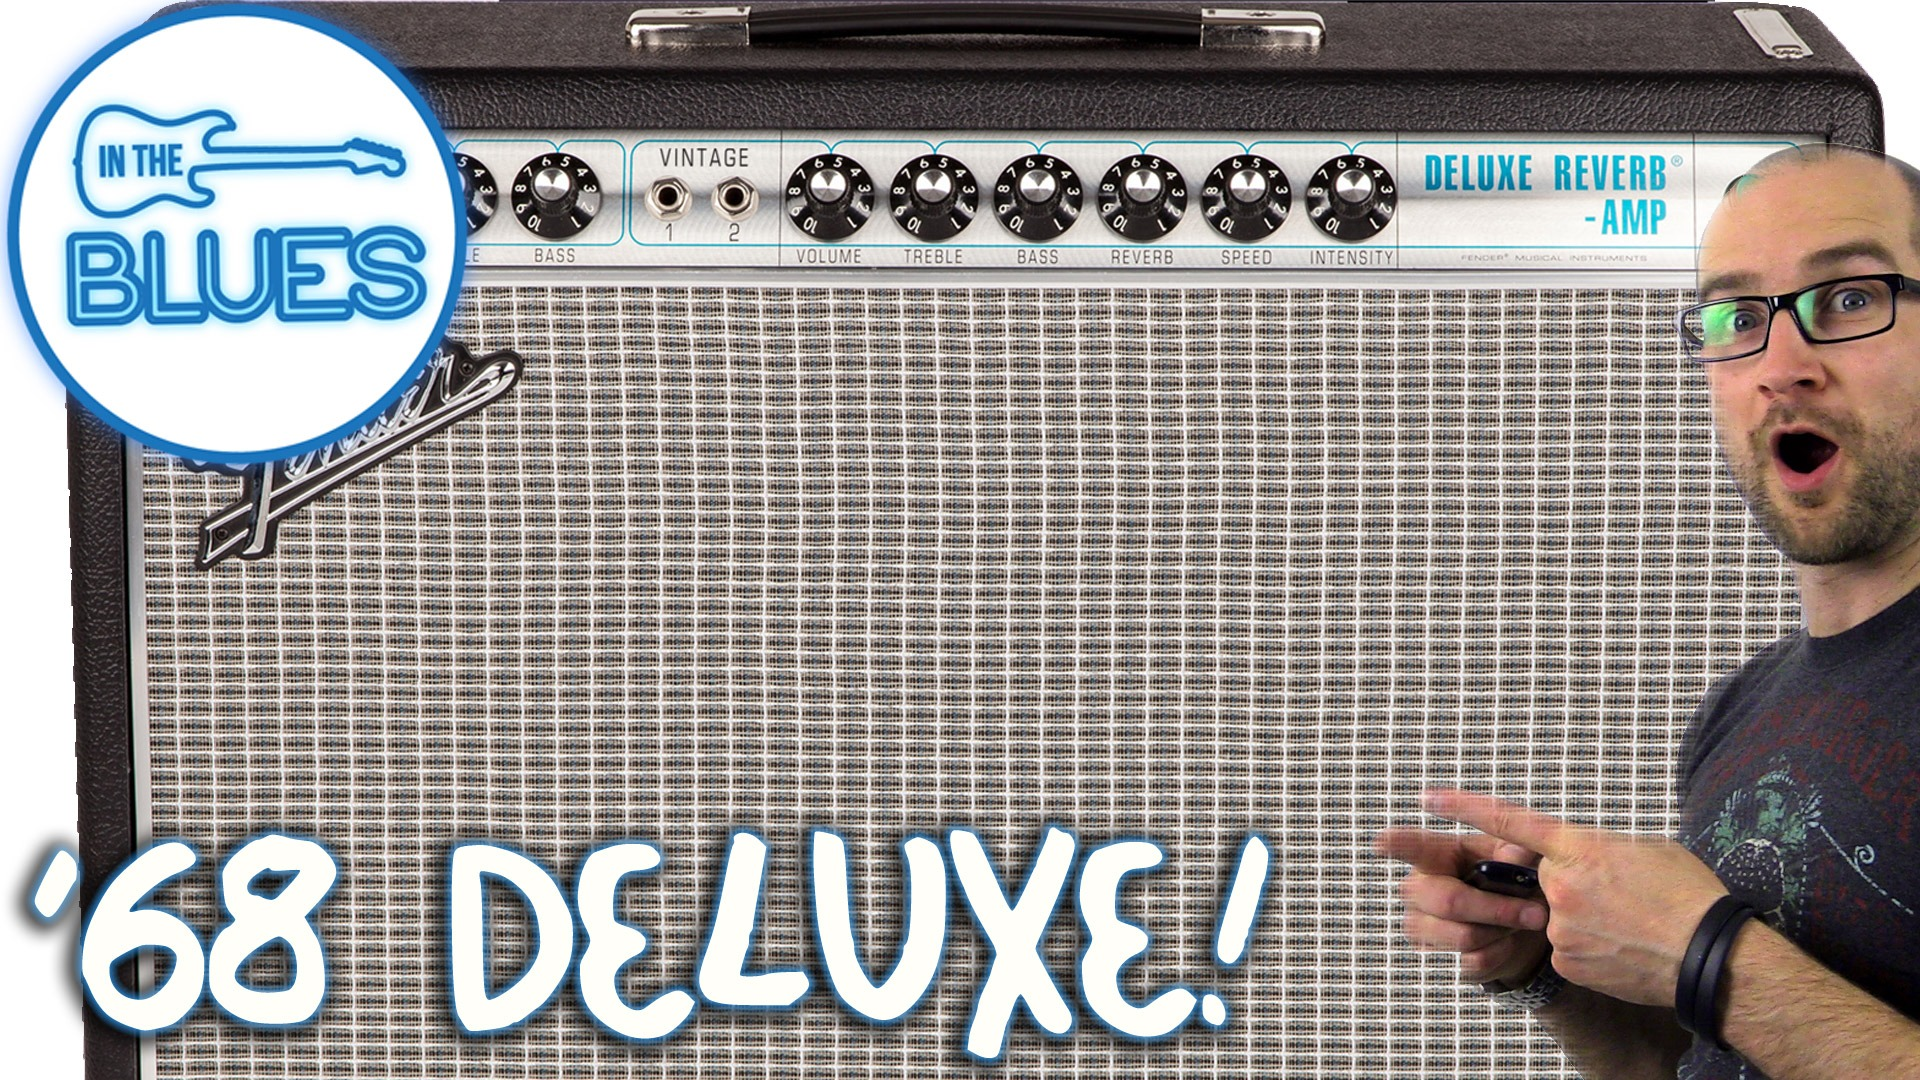 Fender 65 Deluxe vs Fender 68 Custom Deluxe Reverb Review